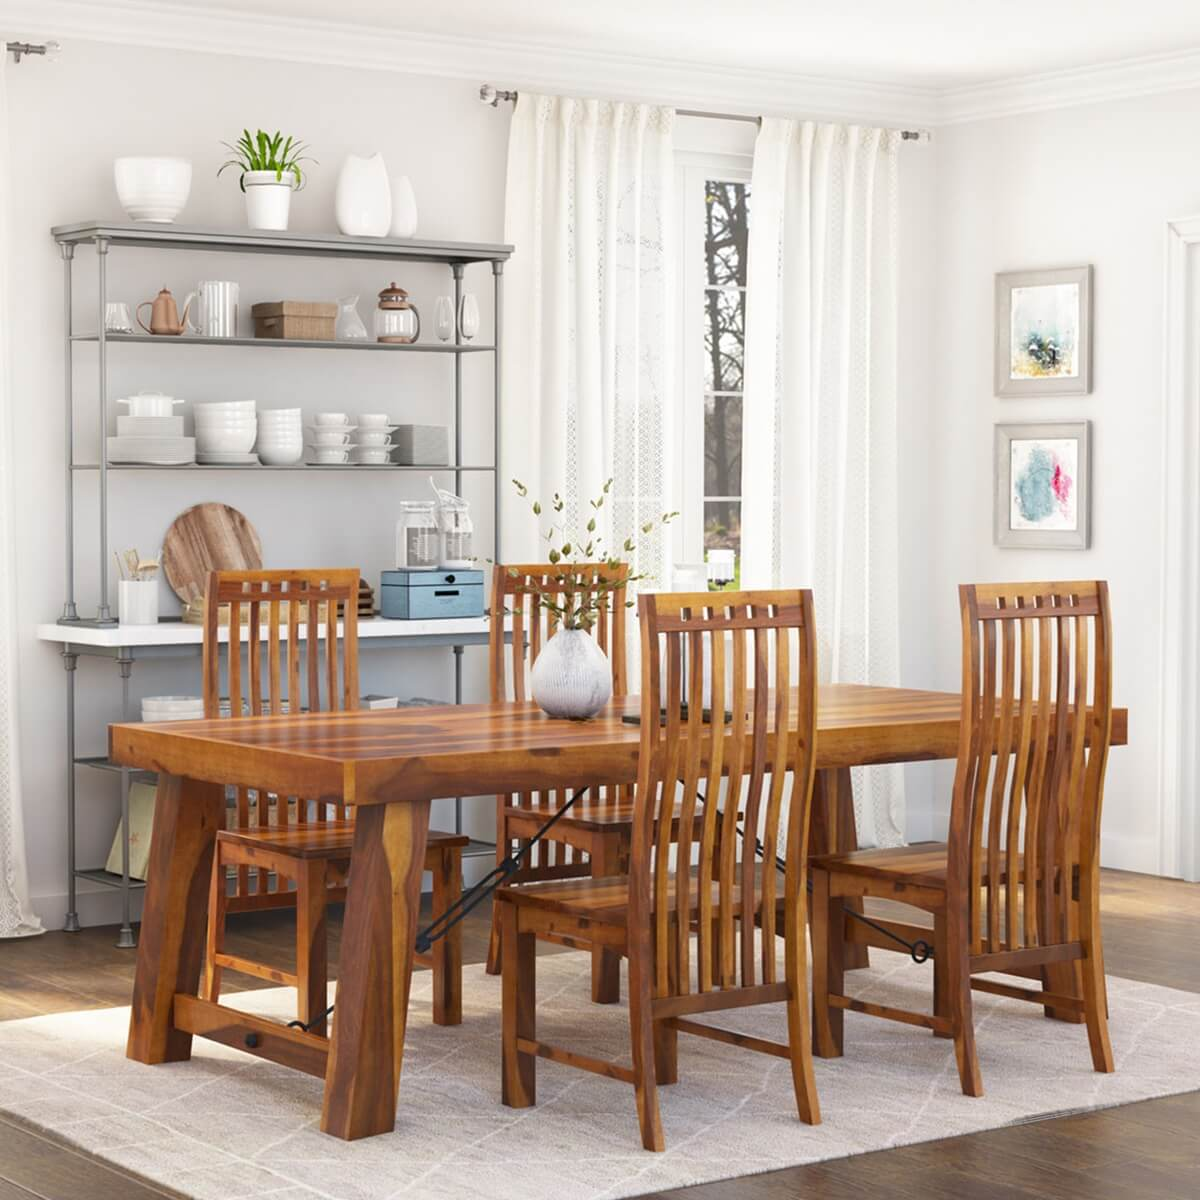 Transitional Dining Room Sets: Lincoln 5pc Transitional Dining Room Table & Chair Set